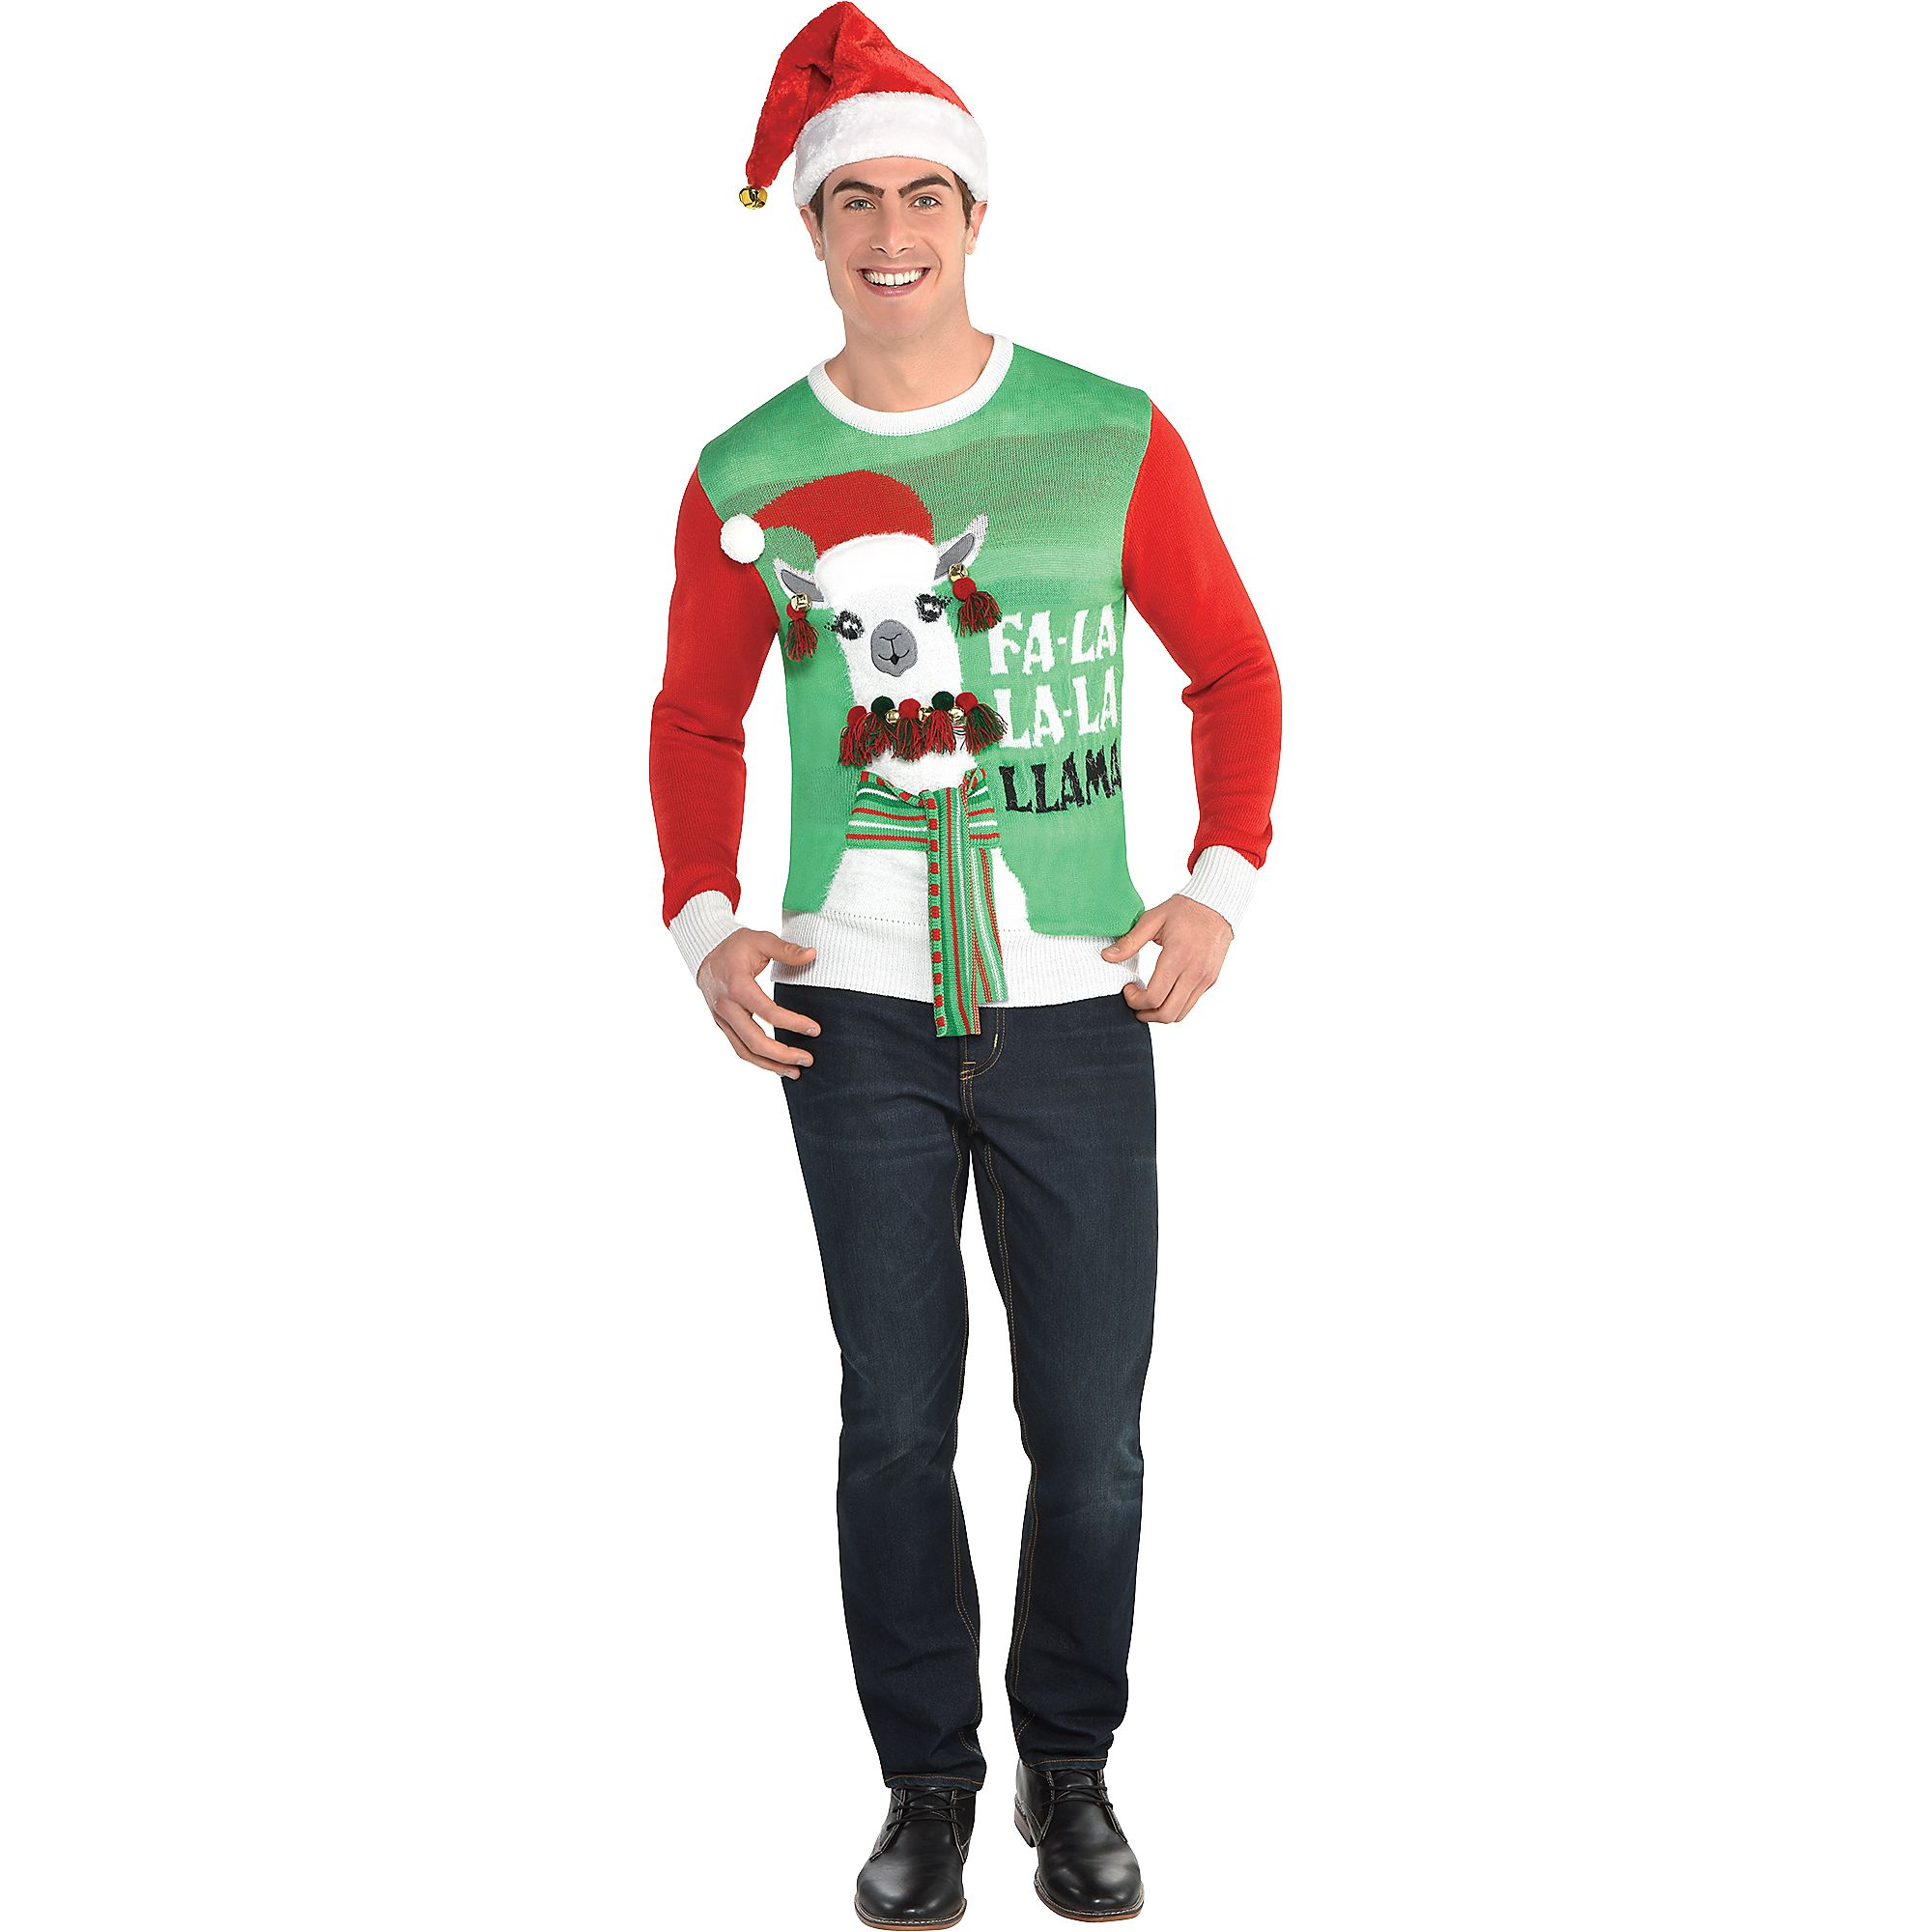 Llama Ugly Christmas Sweater For Adults, Holiday Apparel